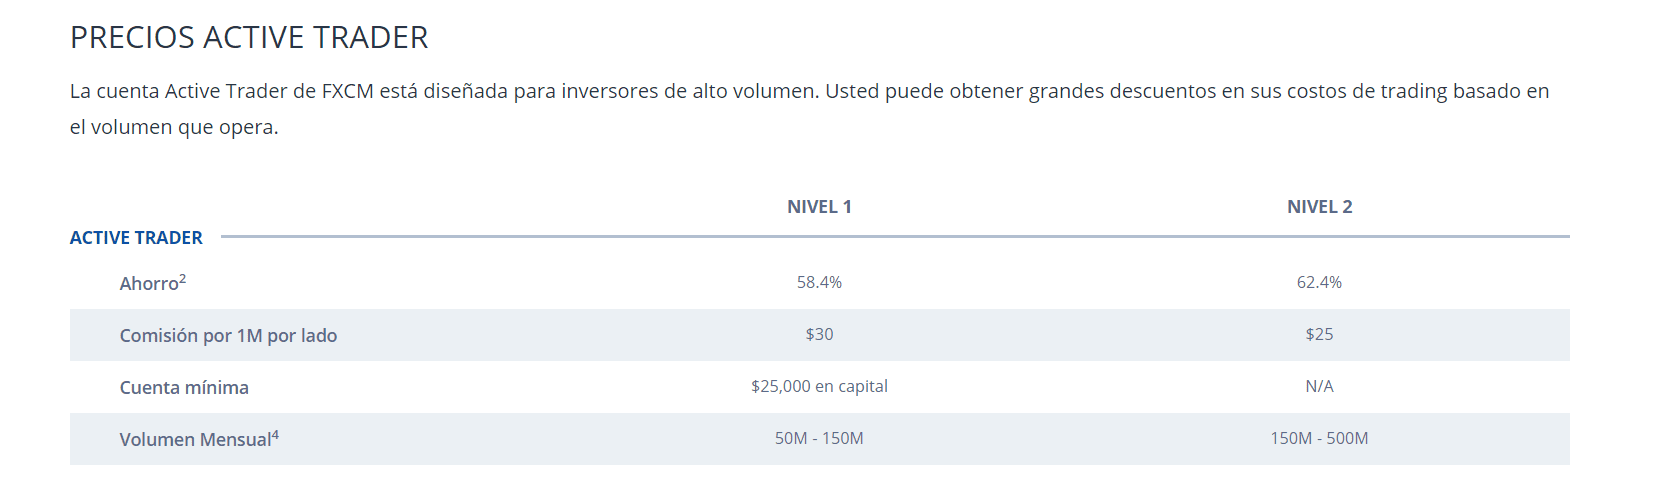 comisiones Active Trader Fxcm